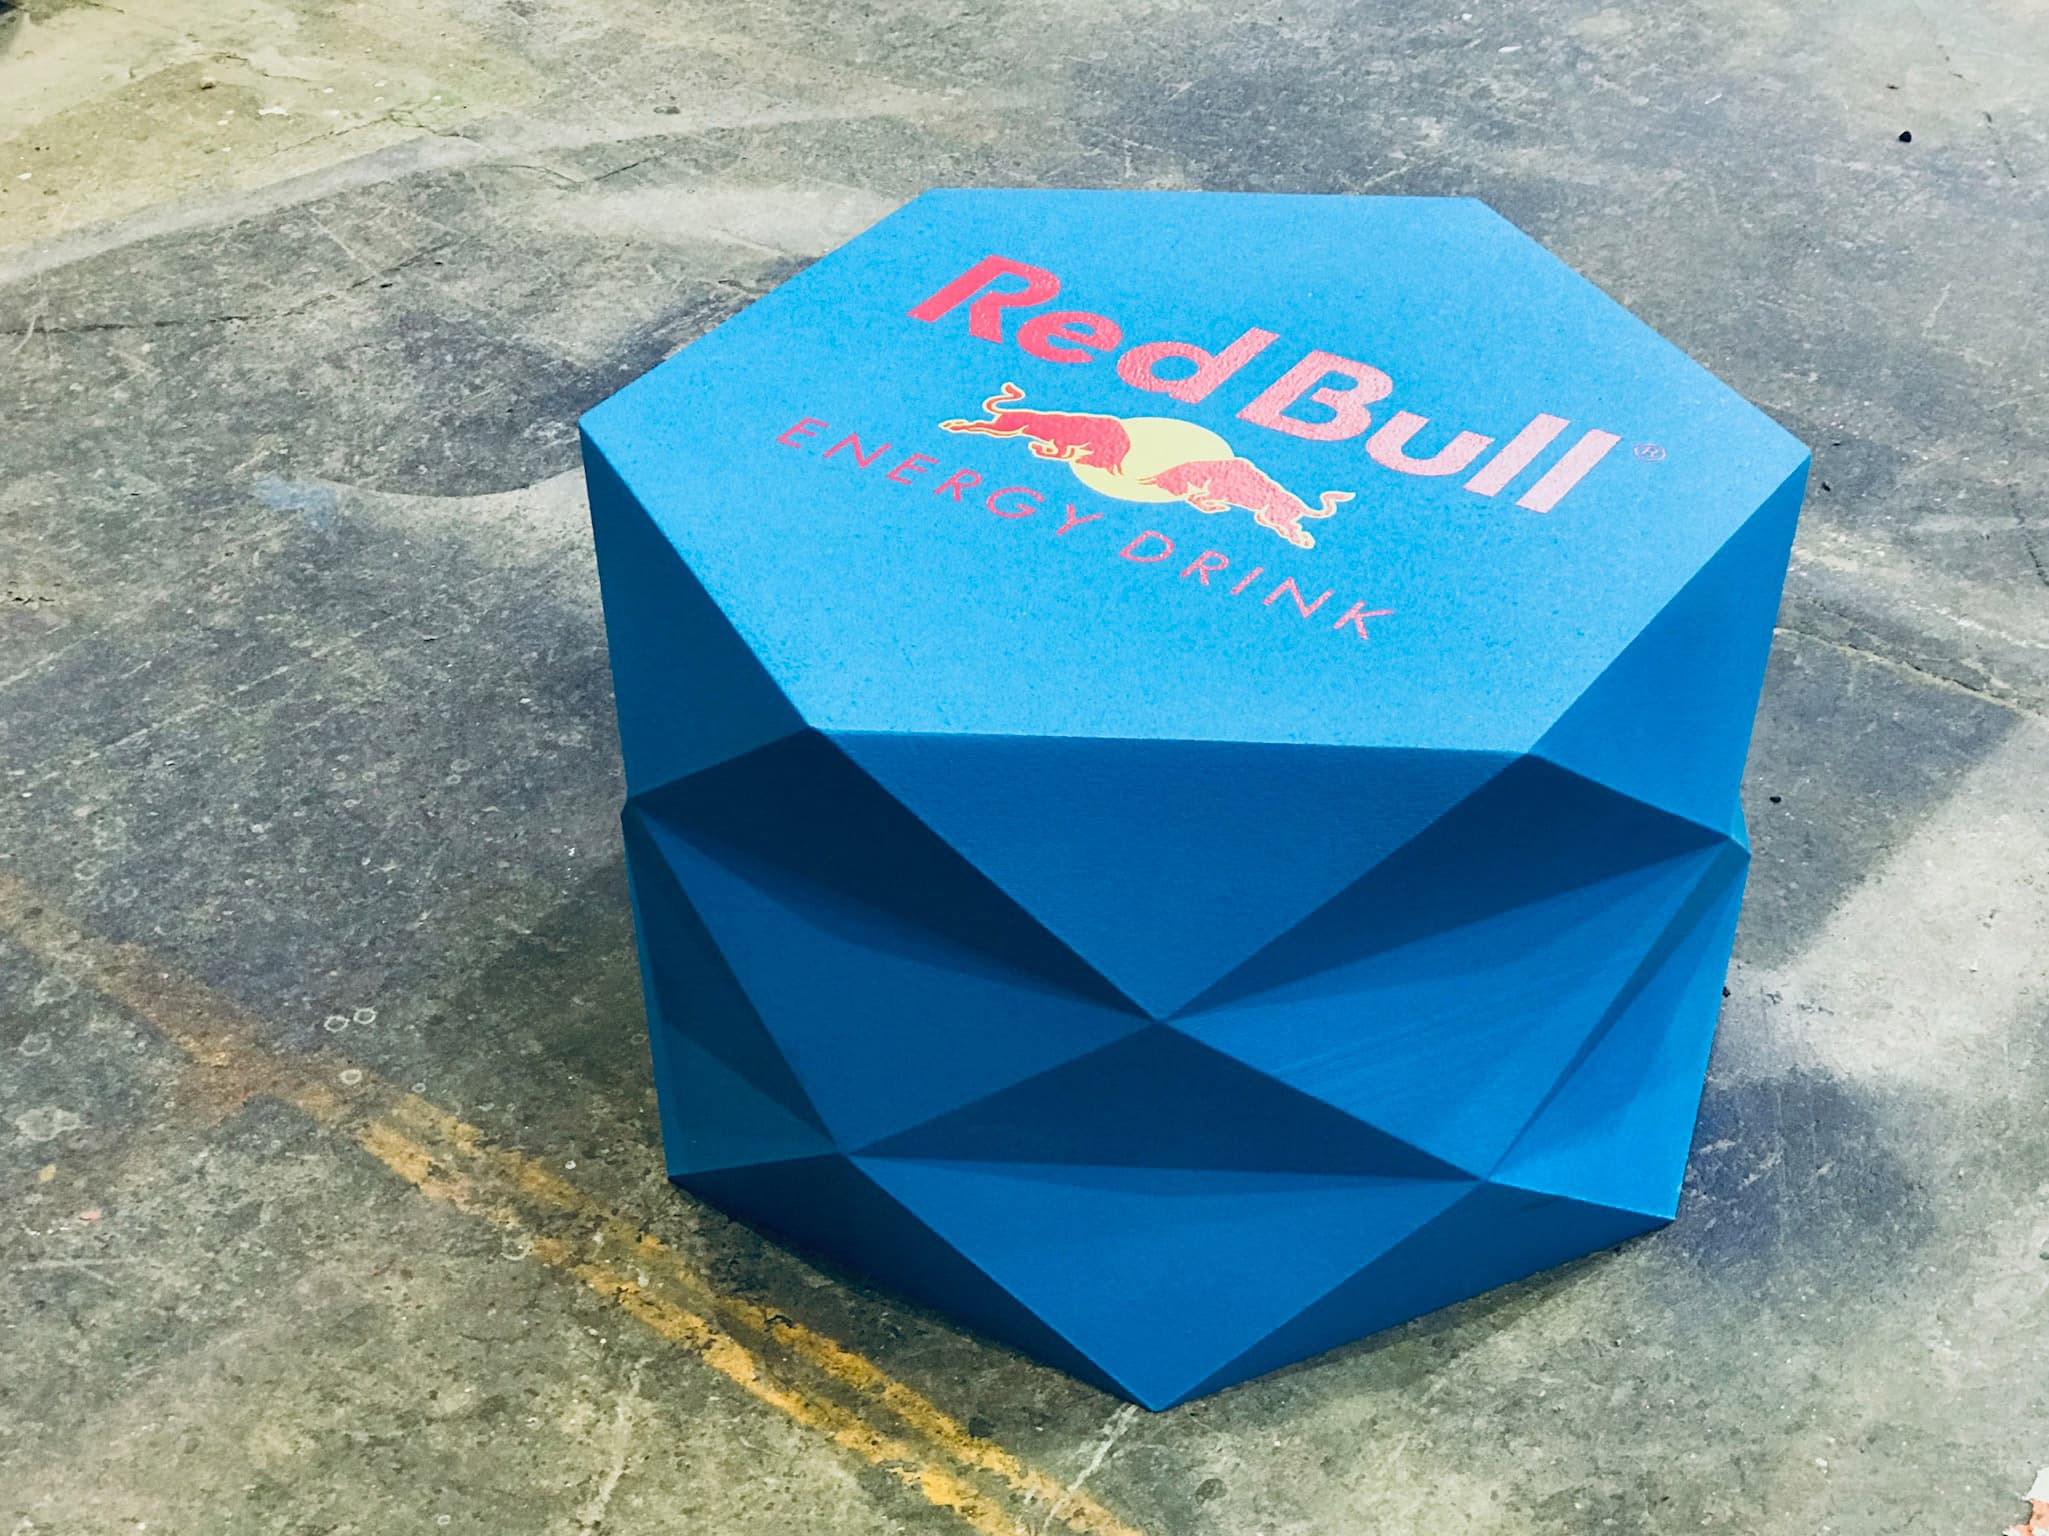 Facet Table Red Bull branded